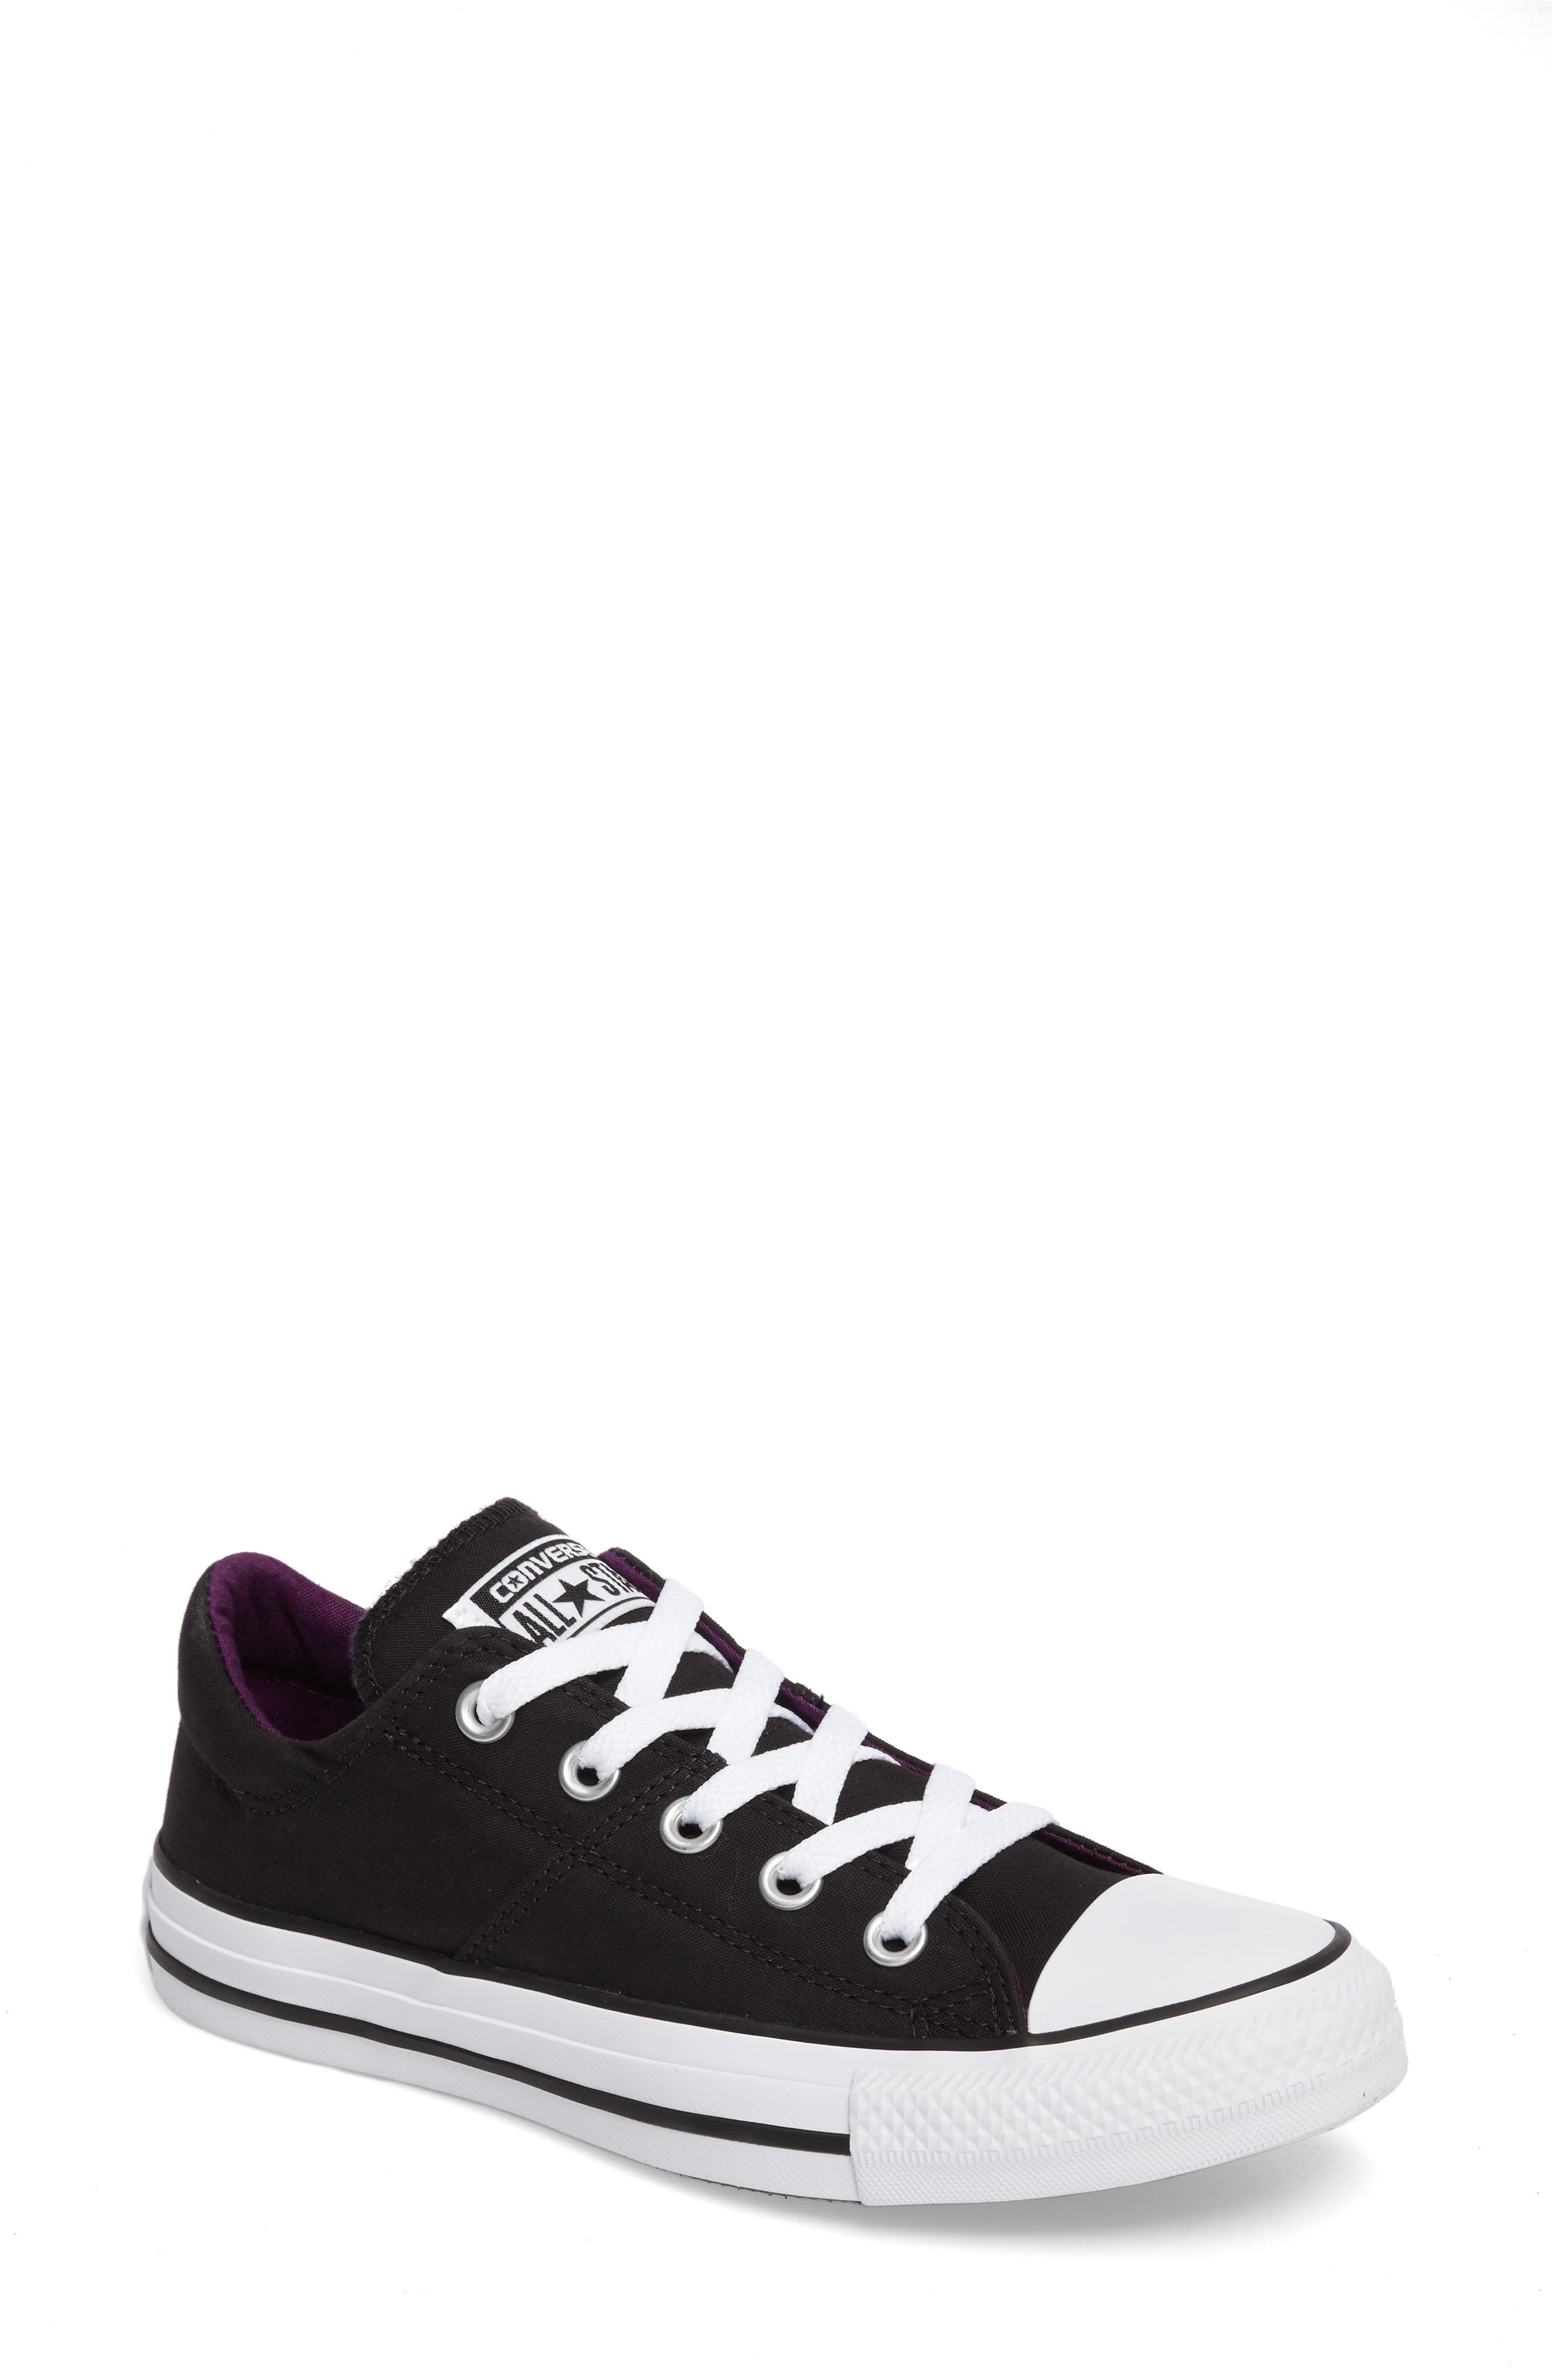 Chuck Taylor<sup>®</sup> All Star<sup>®</sup> Madison Low Top Sneaker,                         Main,                         color, Black Canvas